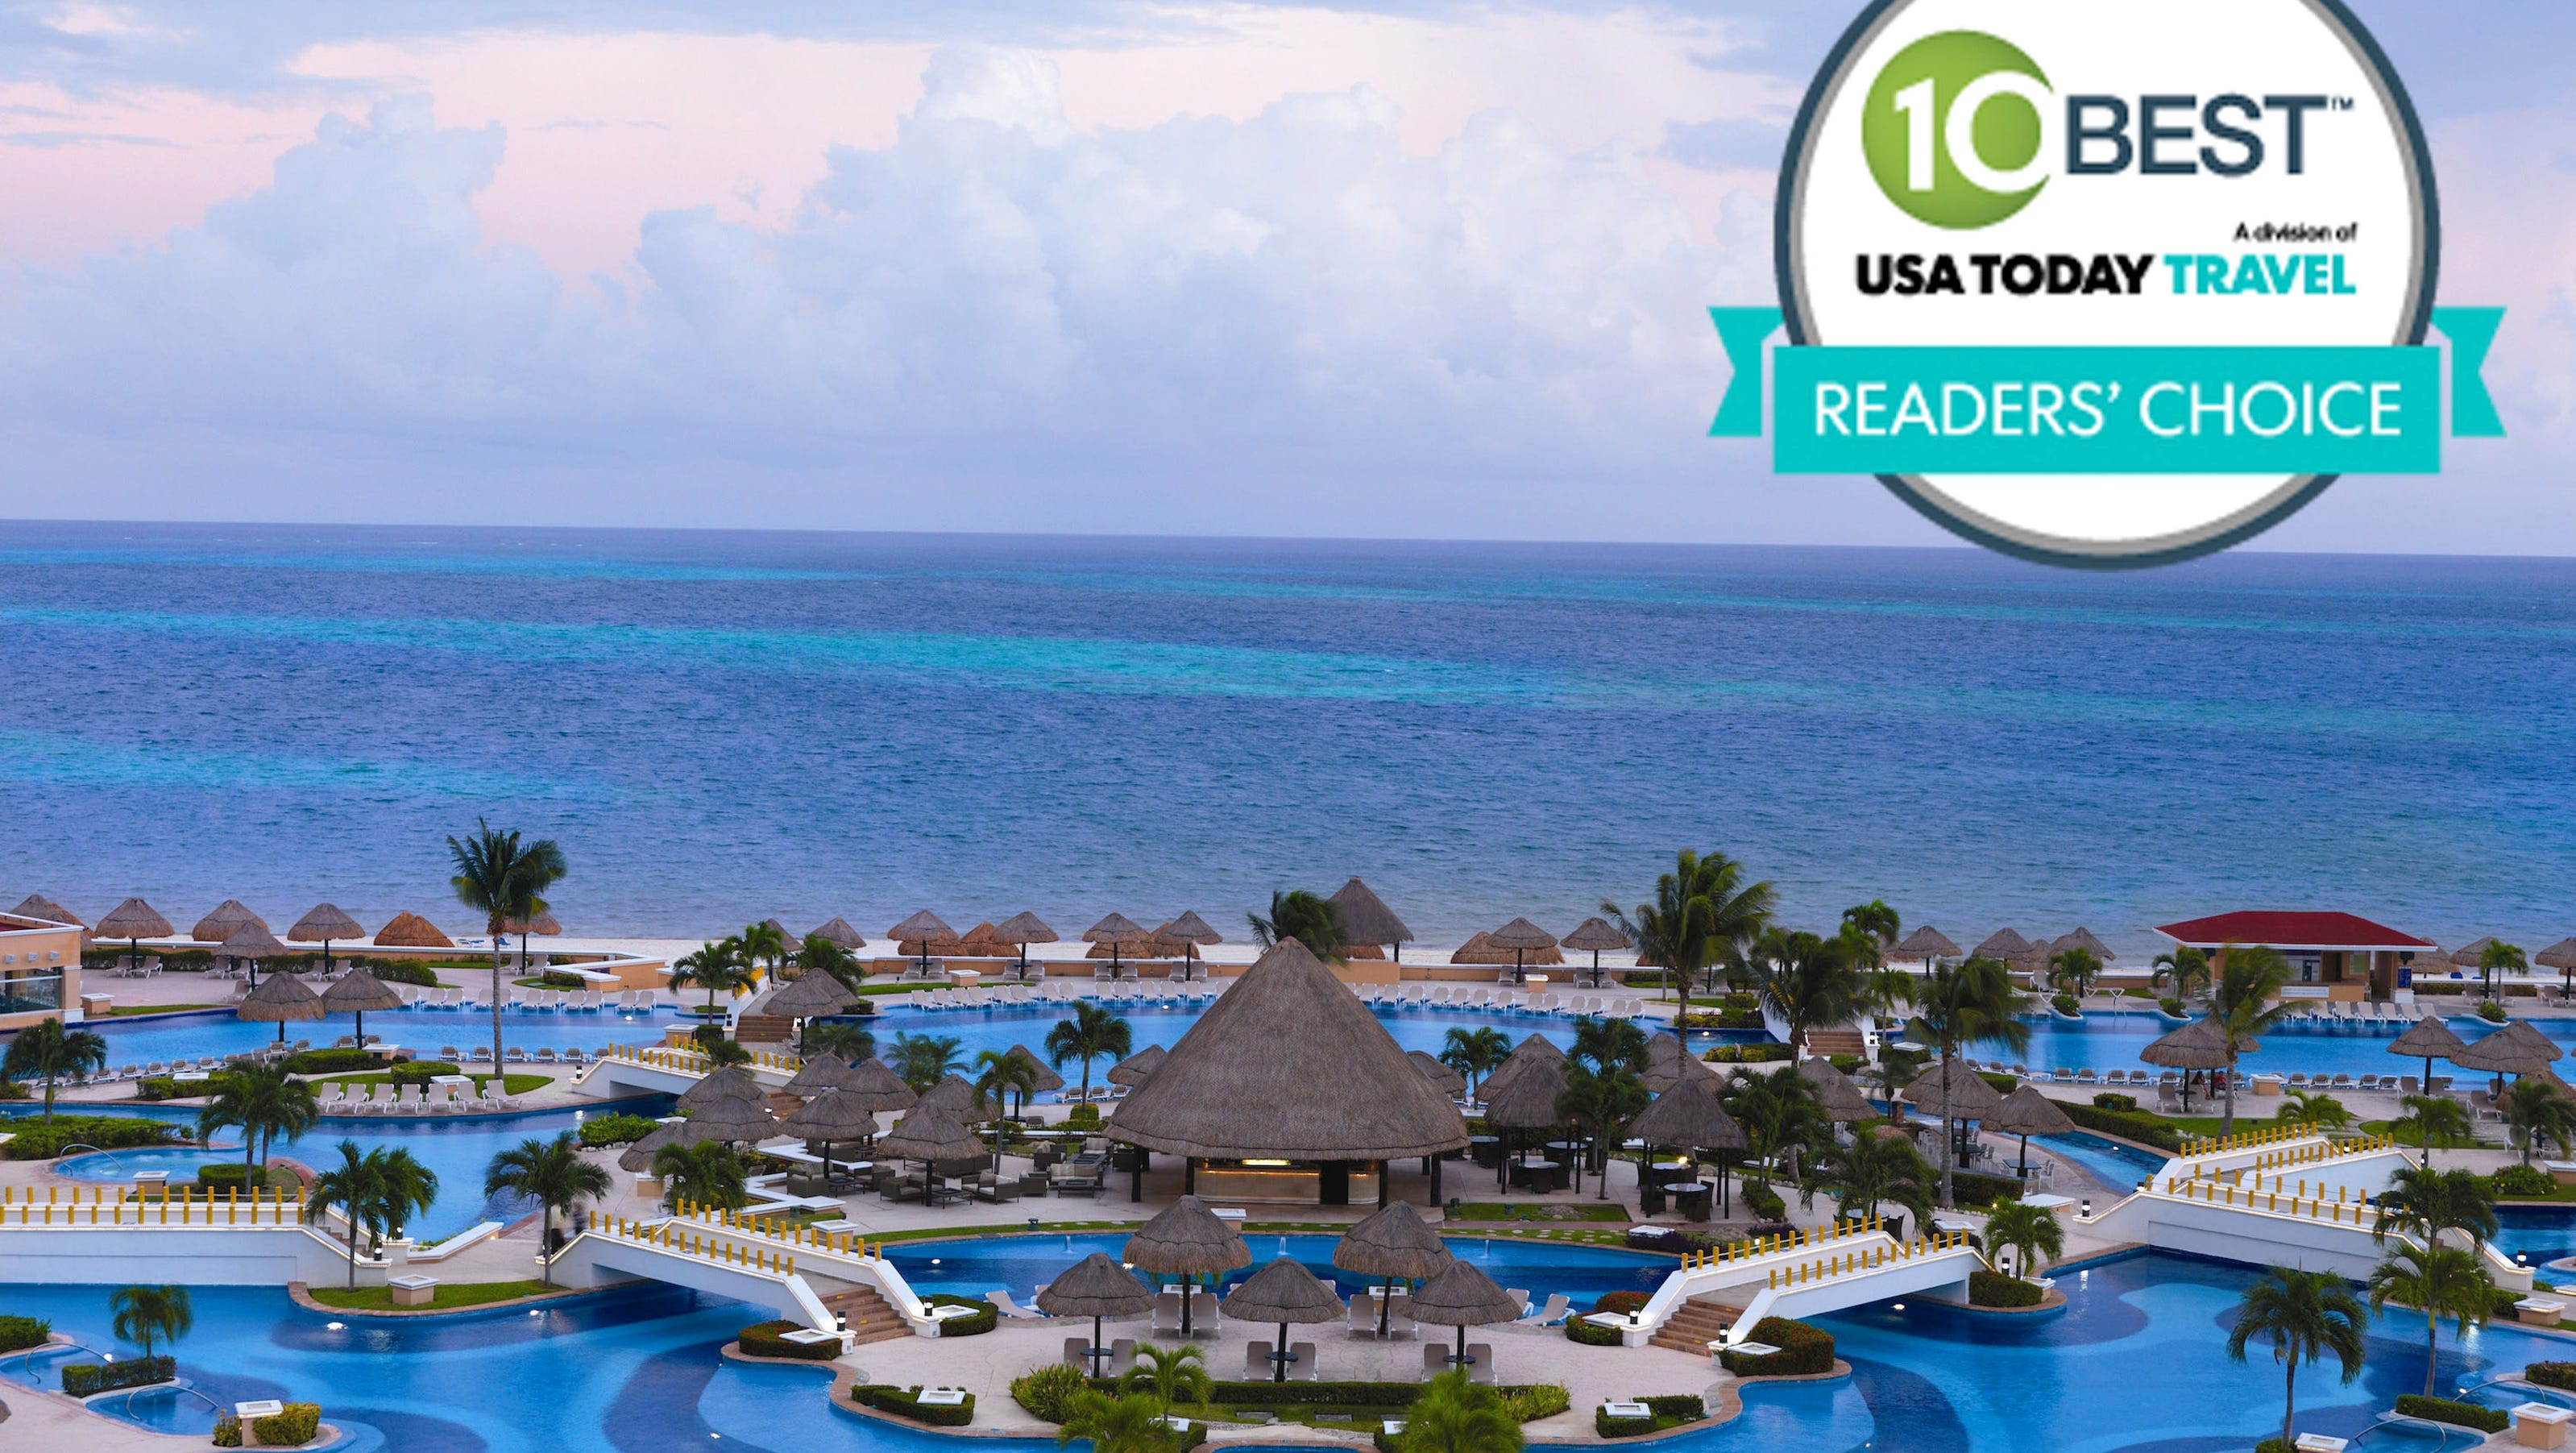 Best all inclusive resorts readers 39 choice award winners for Best all inclusive resorts for your money